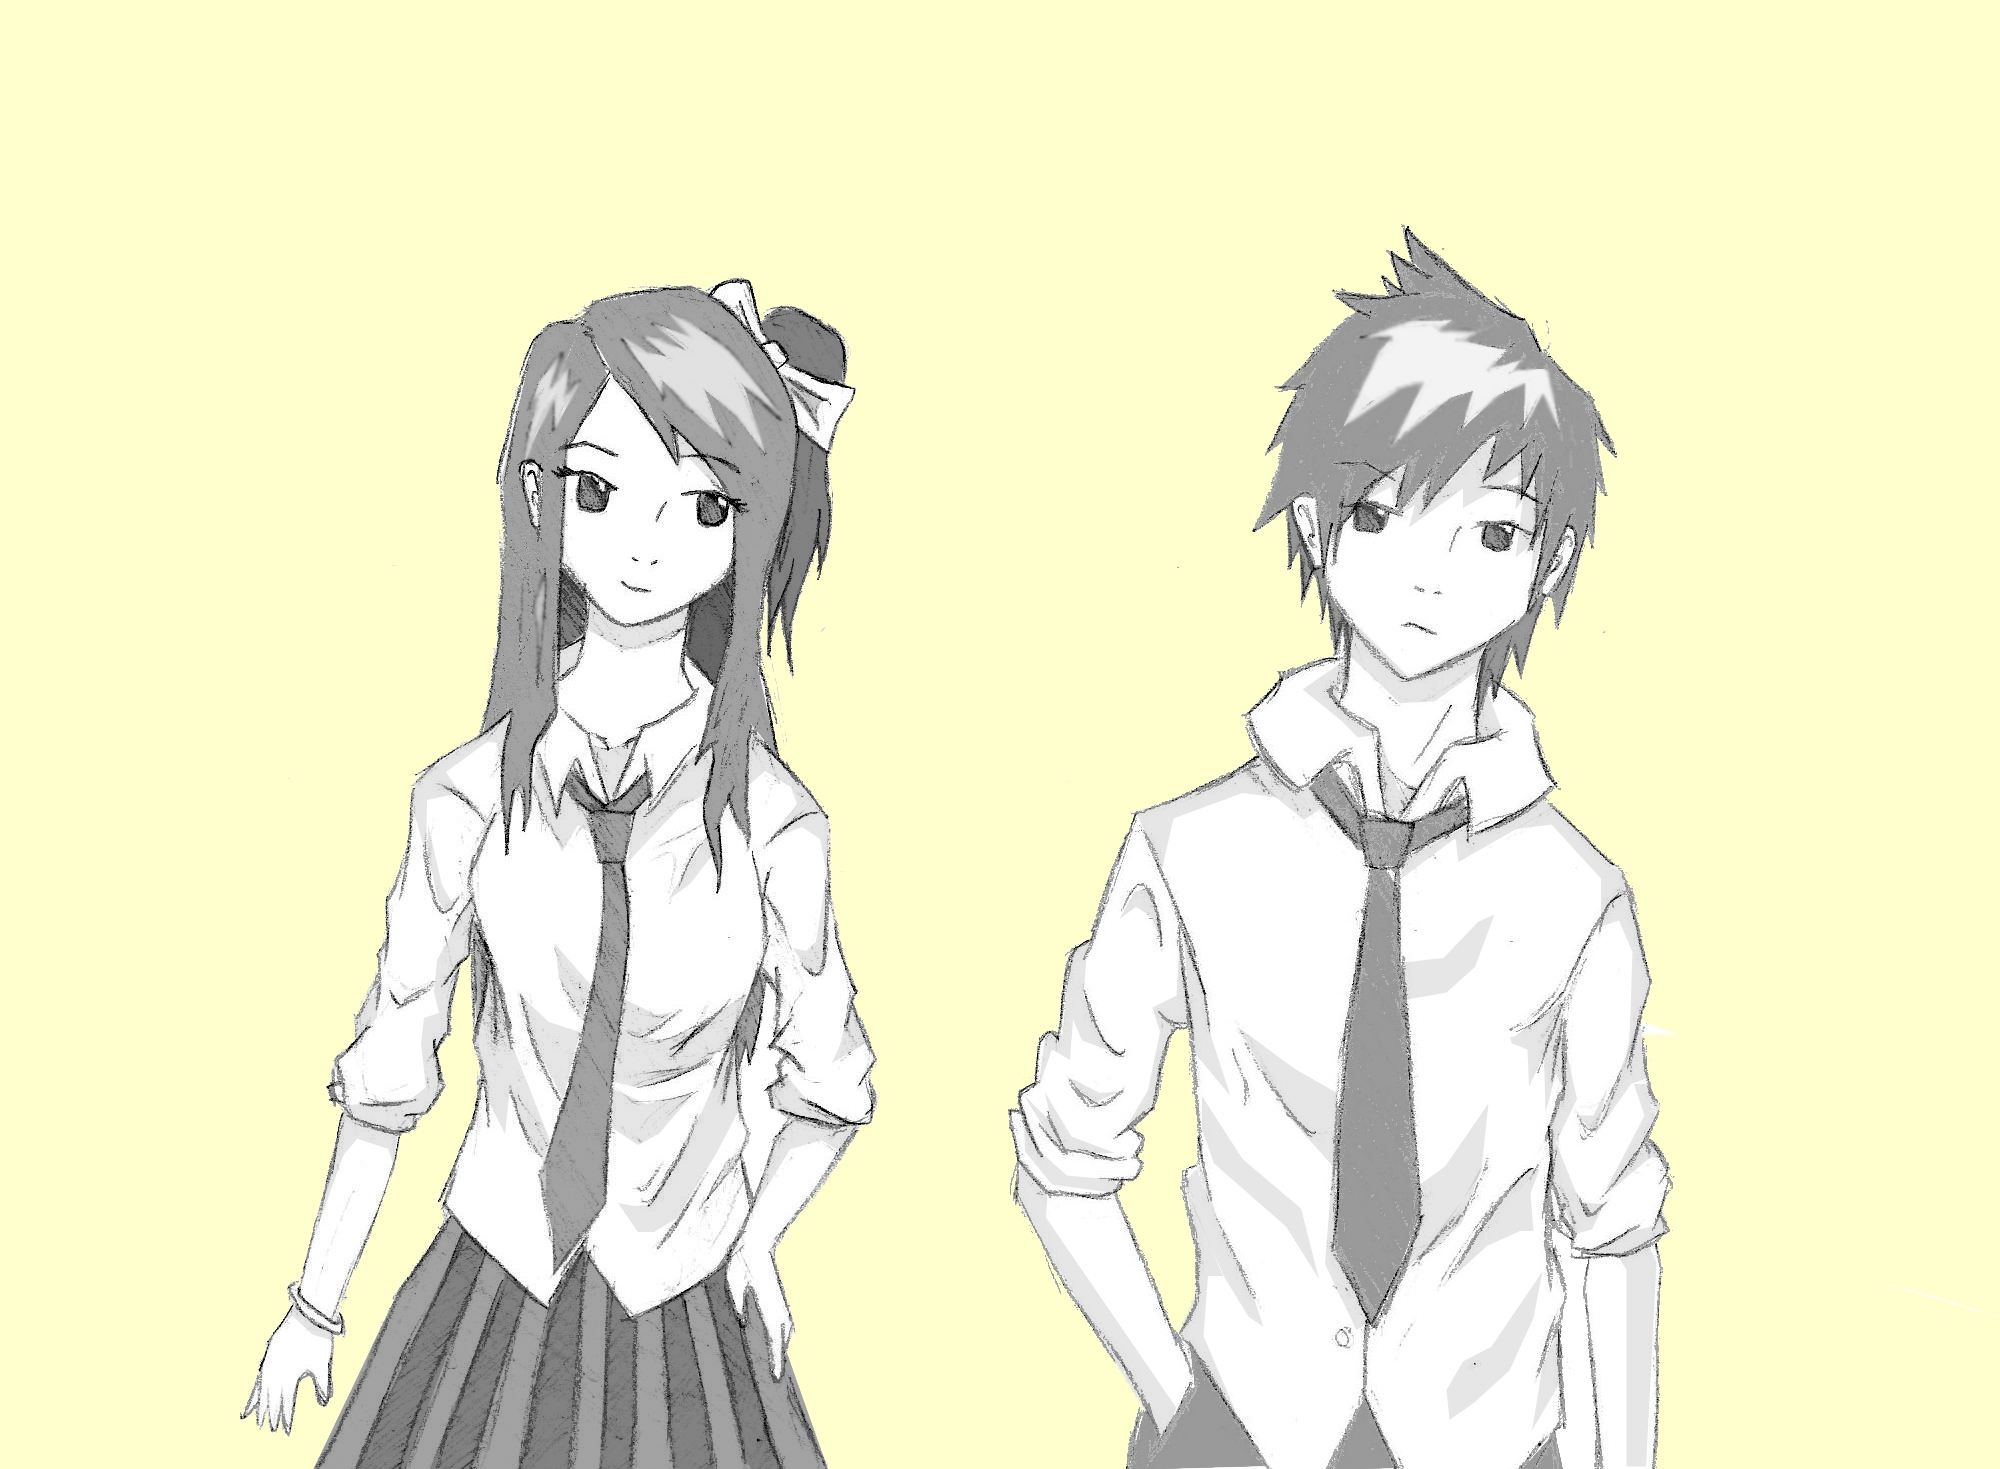 2000x1469 Anime Girl And Boy Holding Hands Anime Drawing Of A Boy And Girl